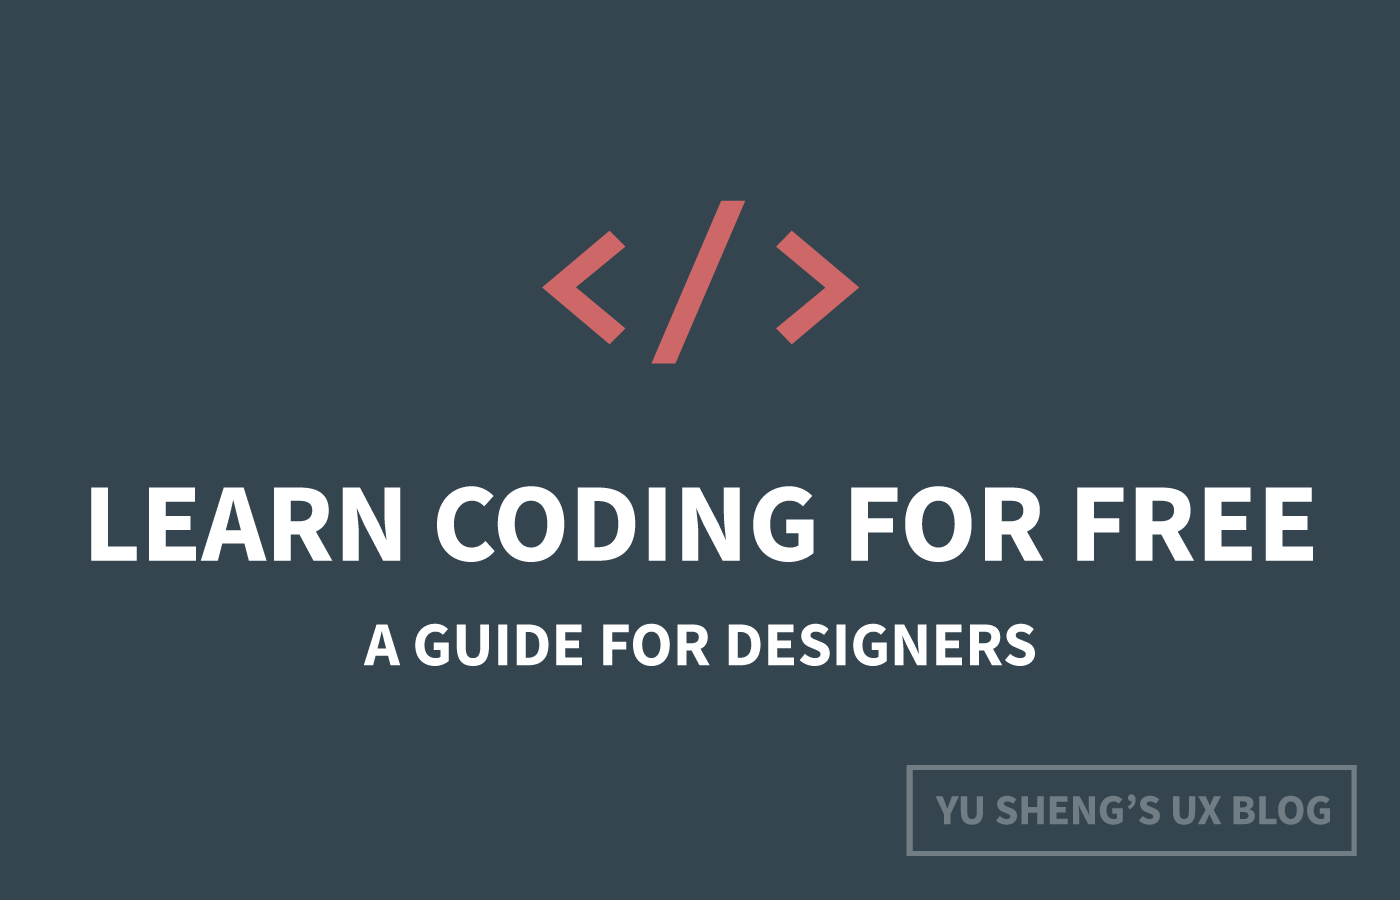 How to learn coding for free: A guide for designers